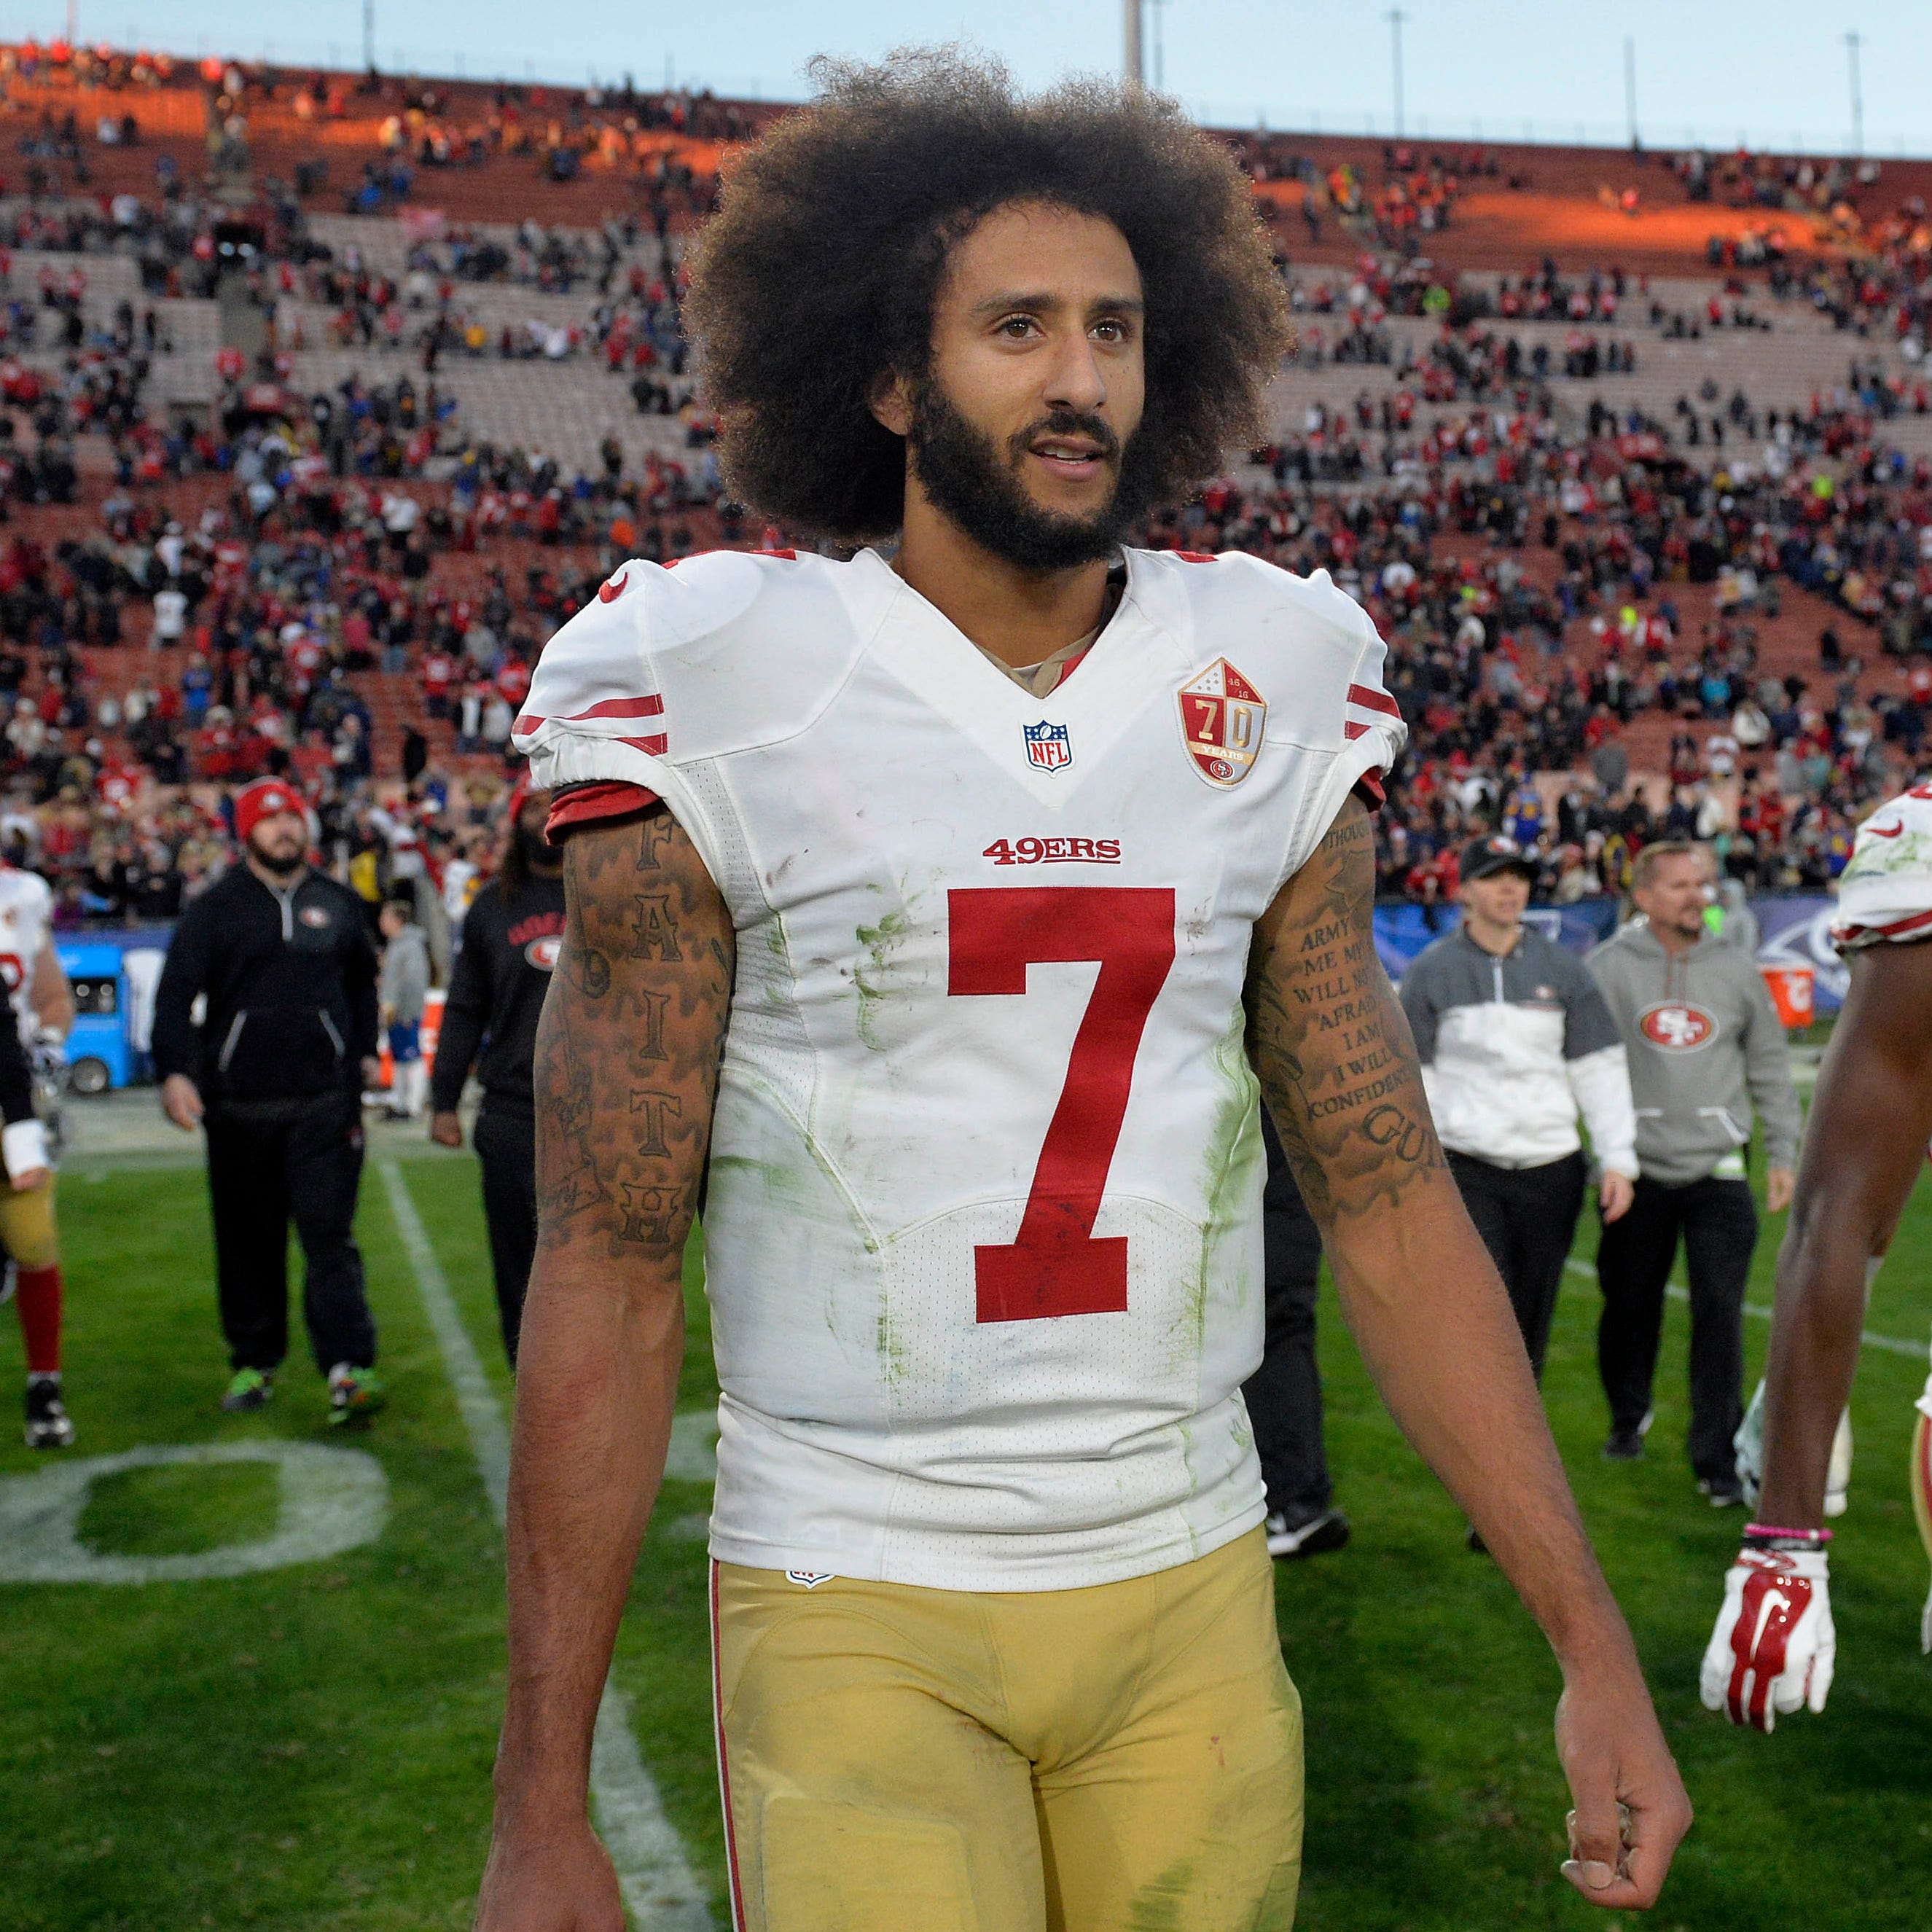 John Elway should be embarrassed over his disingenuous comments about Colin Kaepernick